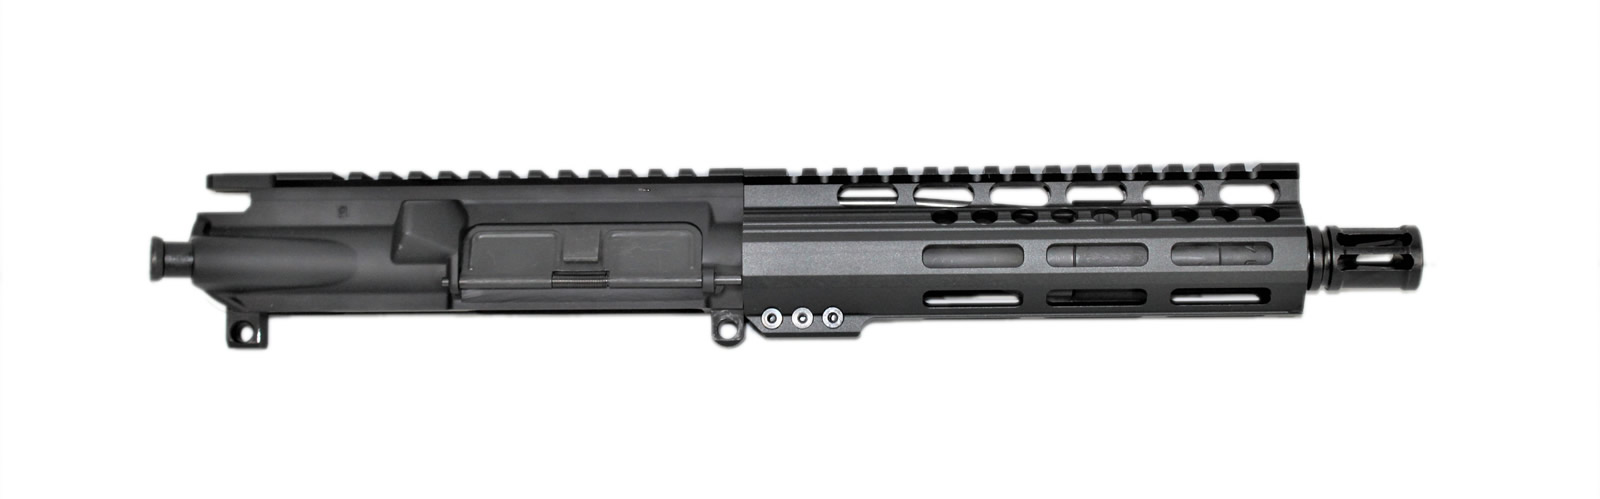 AR-15 Complete Upper Assembly - 7 5